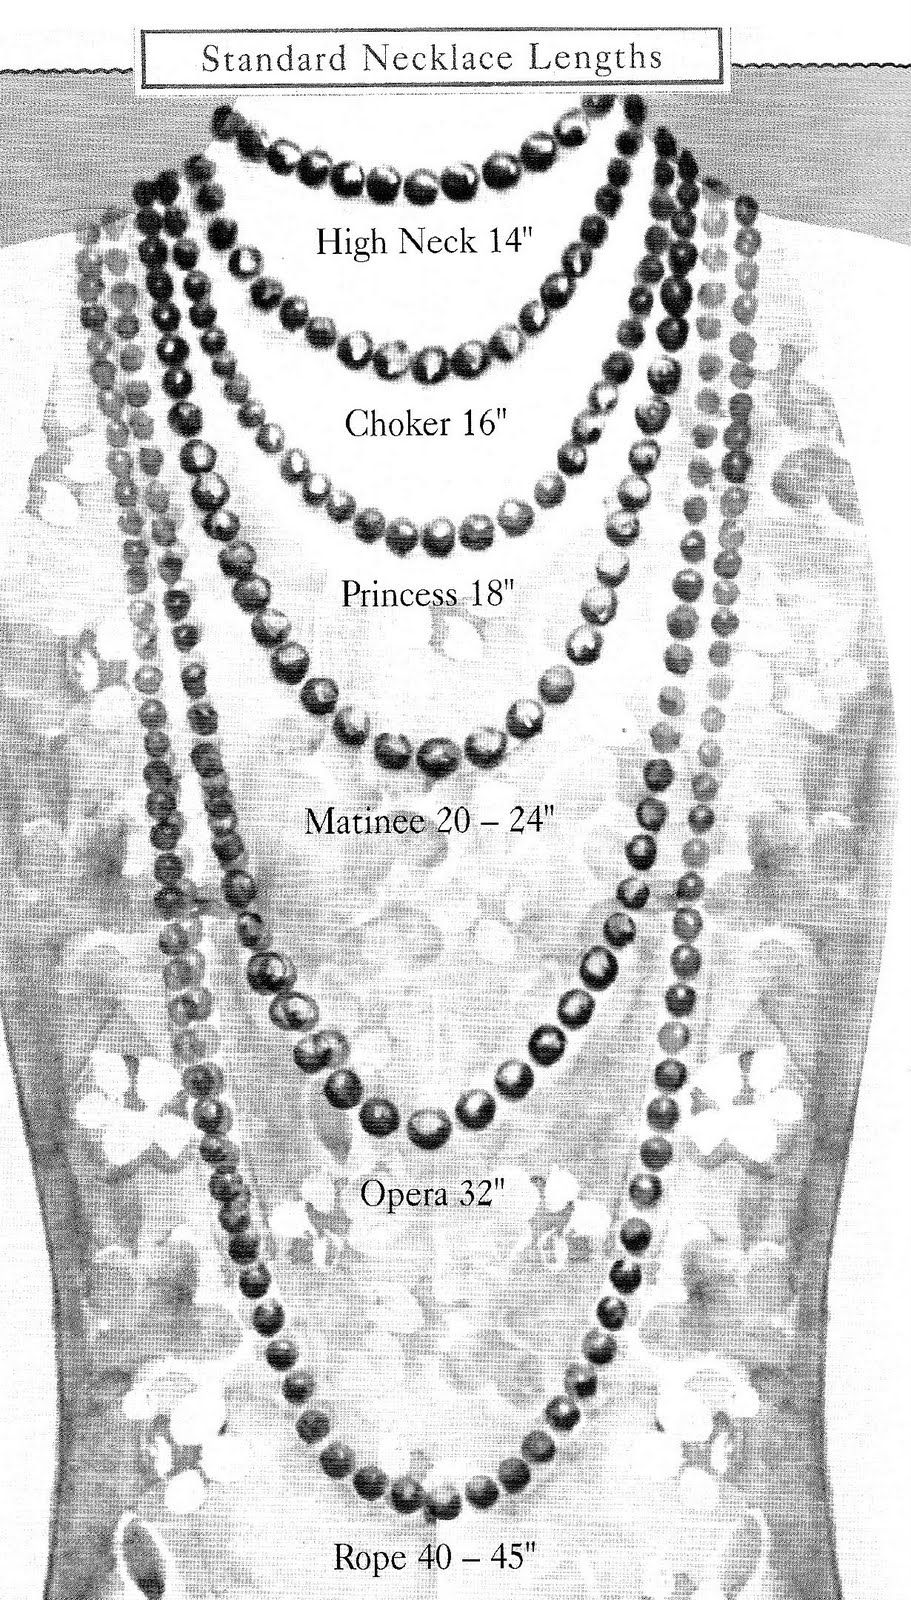 Necklace length guide for an average (size 8) woman. Keep